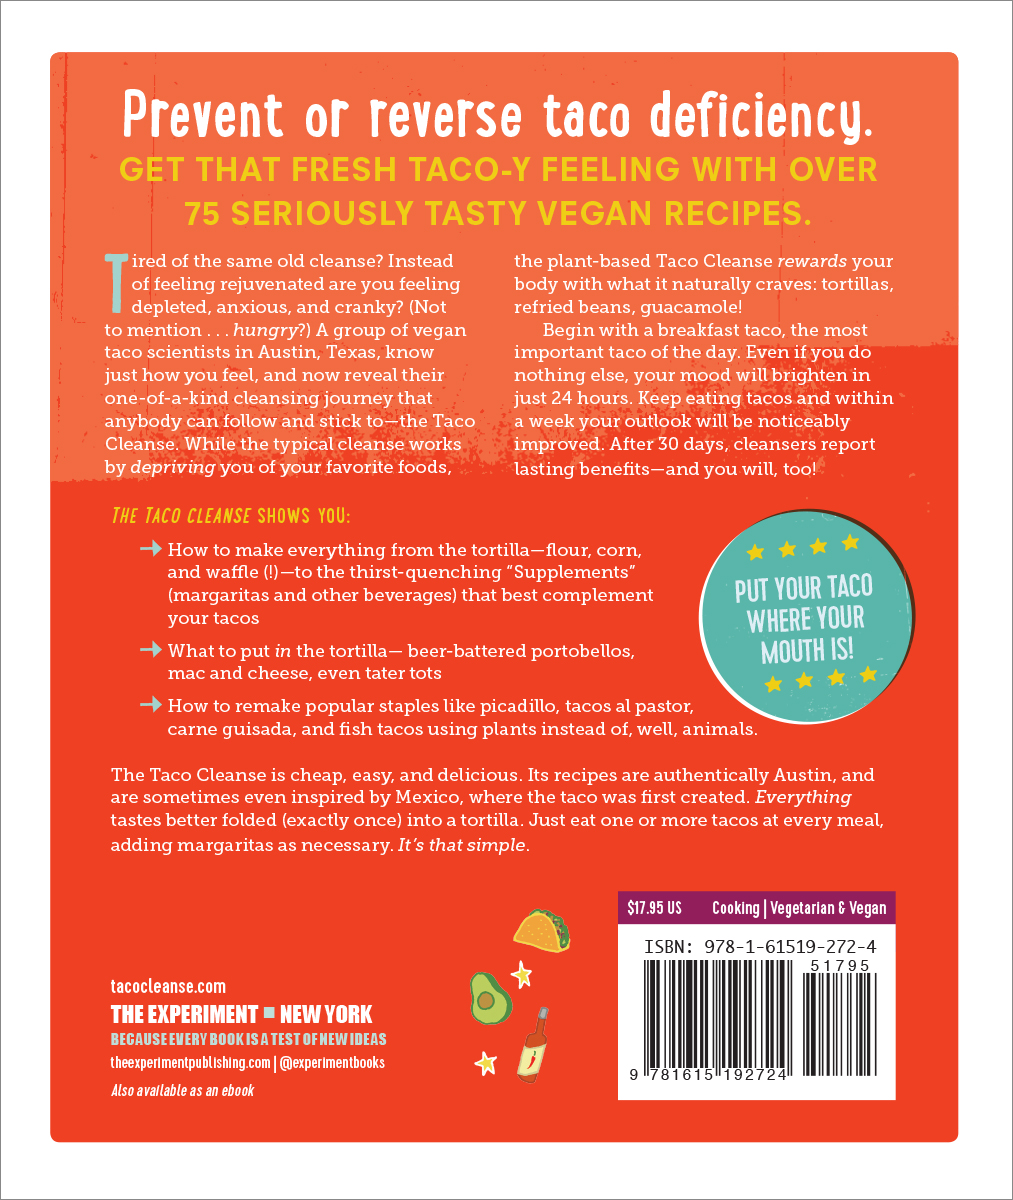 The Taco Cleanse - Workman Publishing